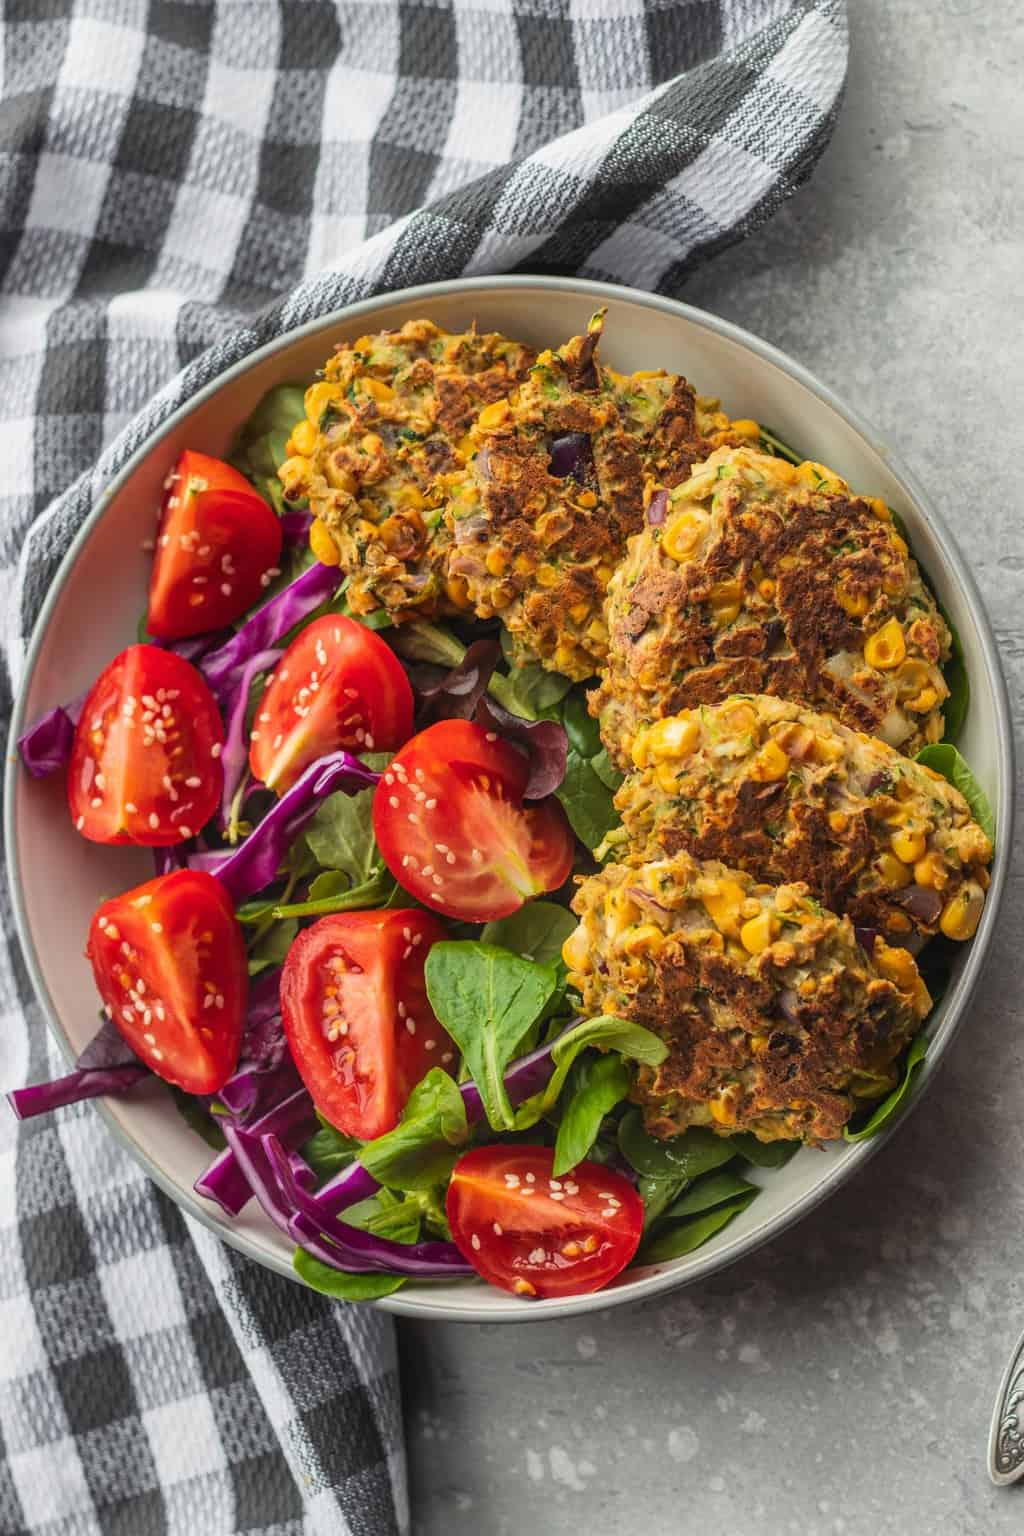 Healthy vegan zucchini fritters with salad